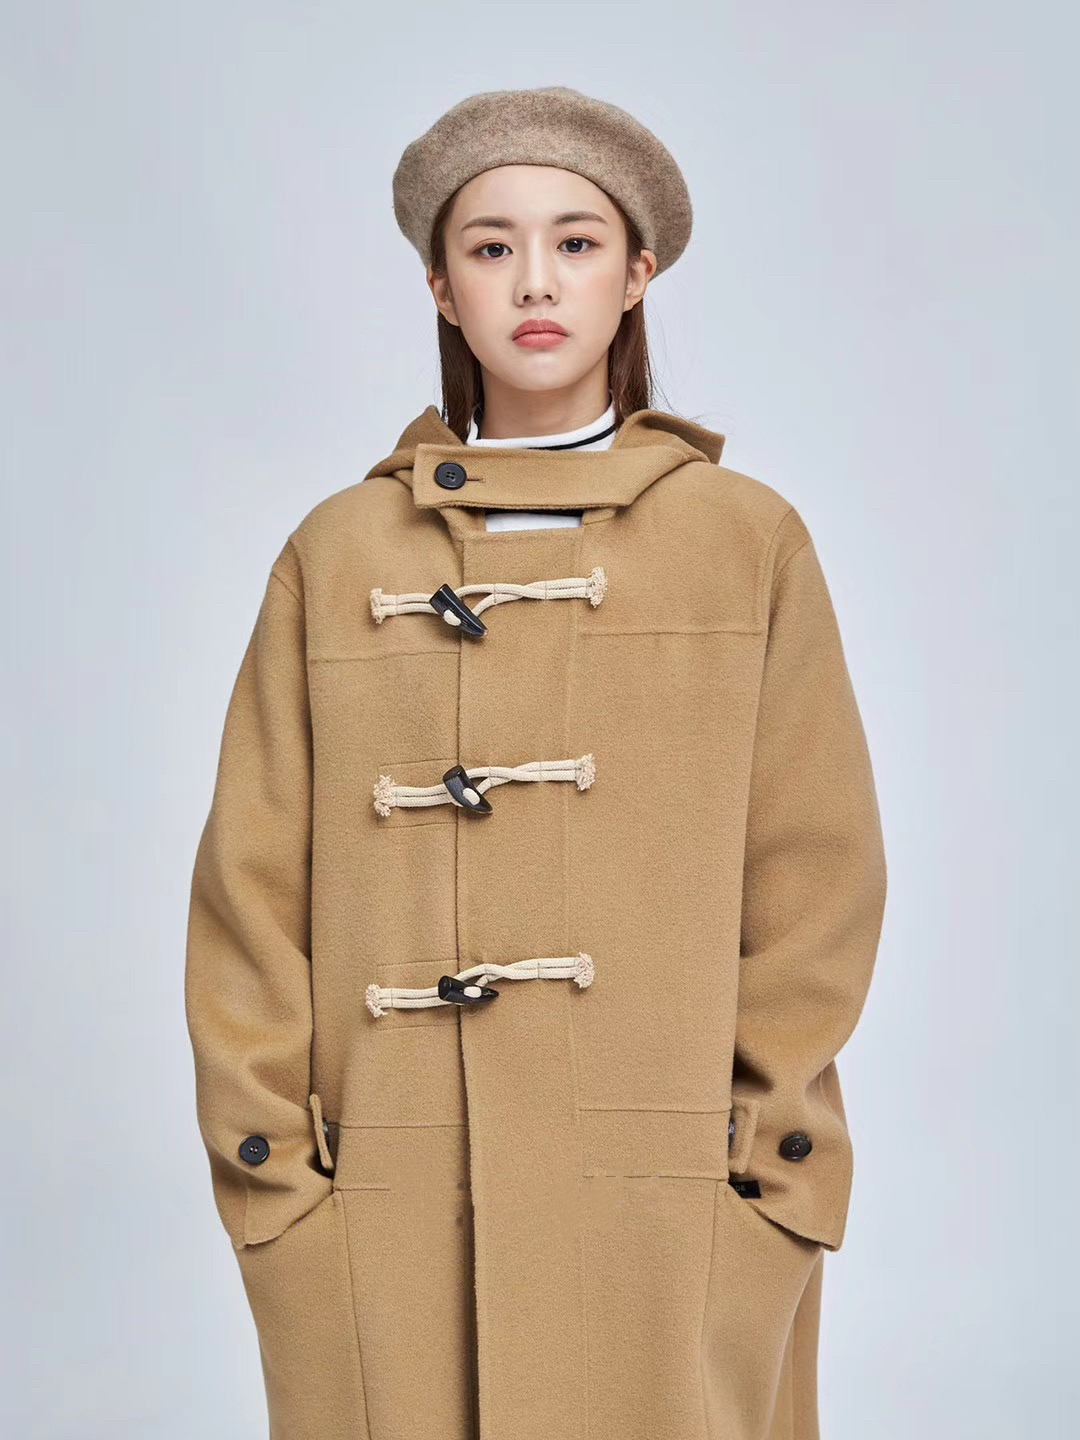 Winter ox horn buckle all wool double-sided tweed coat hand stitched cashmere